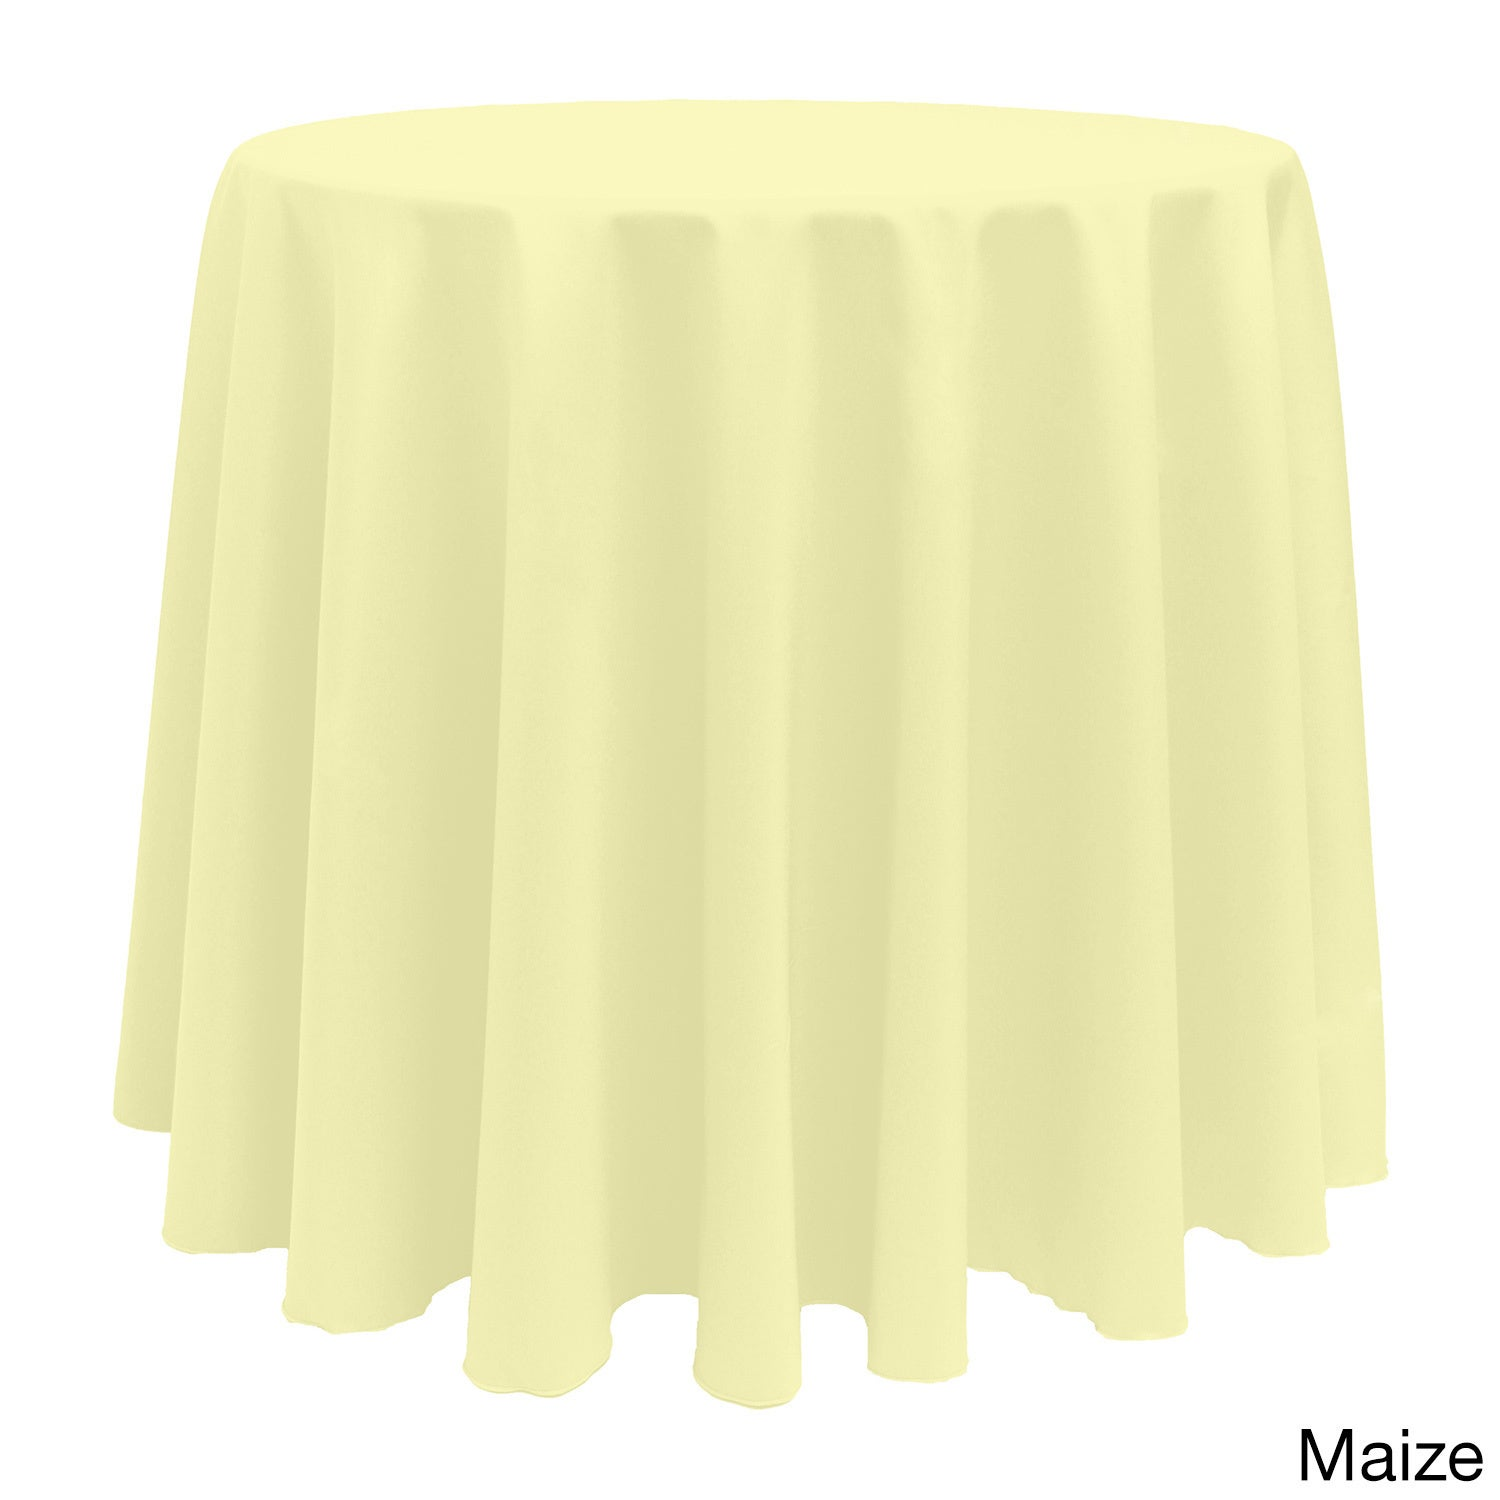 Bright Solid Color 90 Inch Round Tablecloth   Free Shipping On Orders Over  $45   Overstock   17343839